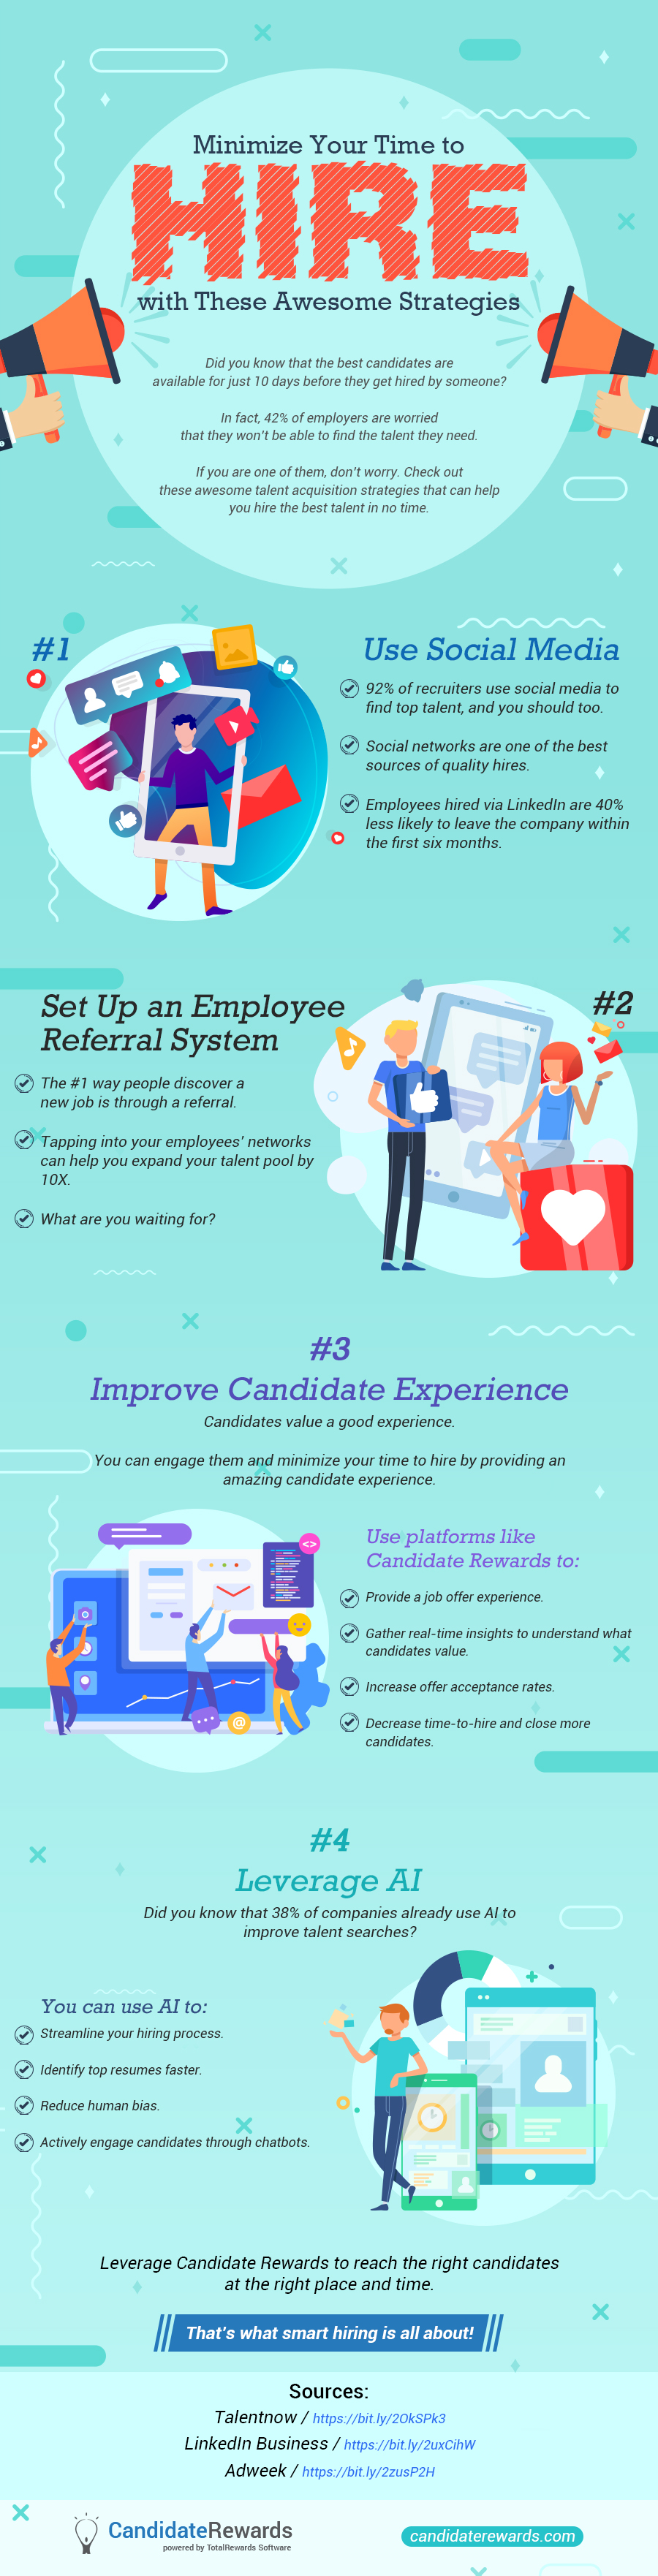 Finding the Right Candidate at the Right Time: Smart Strategies to Reduce Recruitment Timelines - Infographic